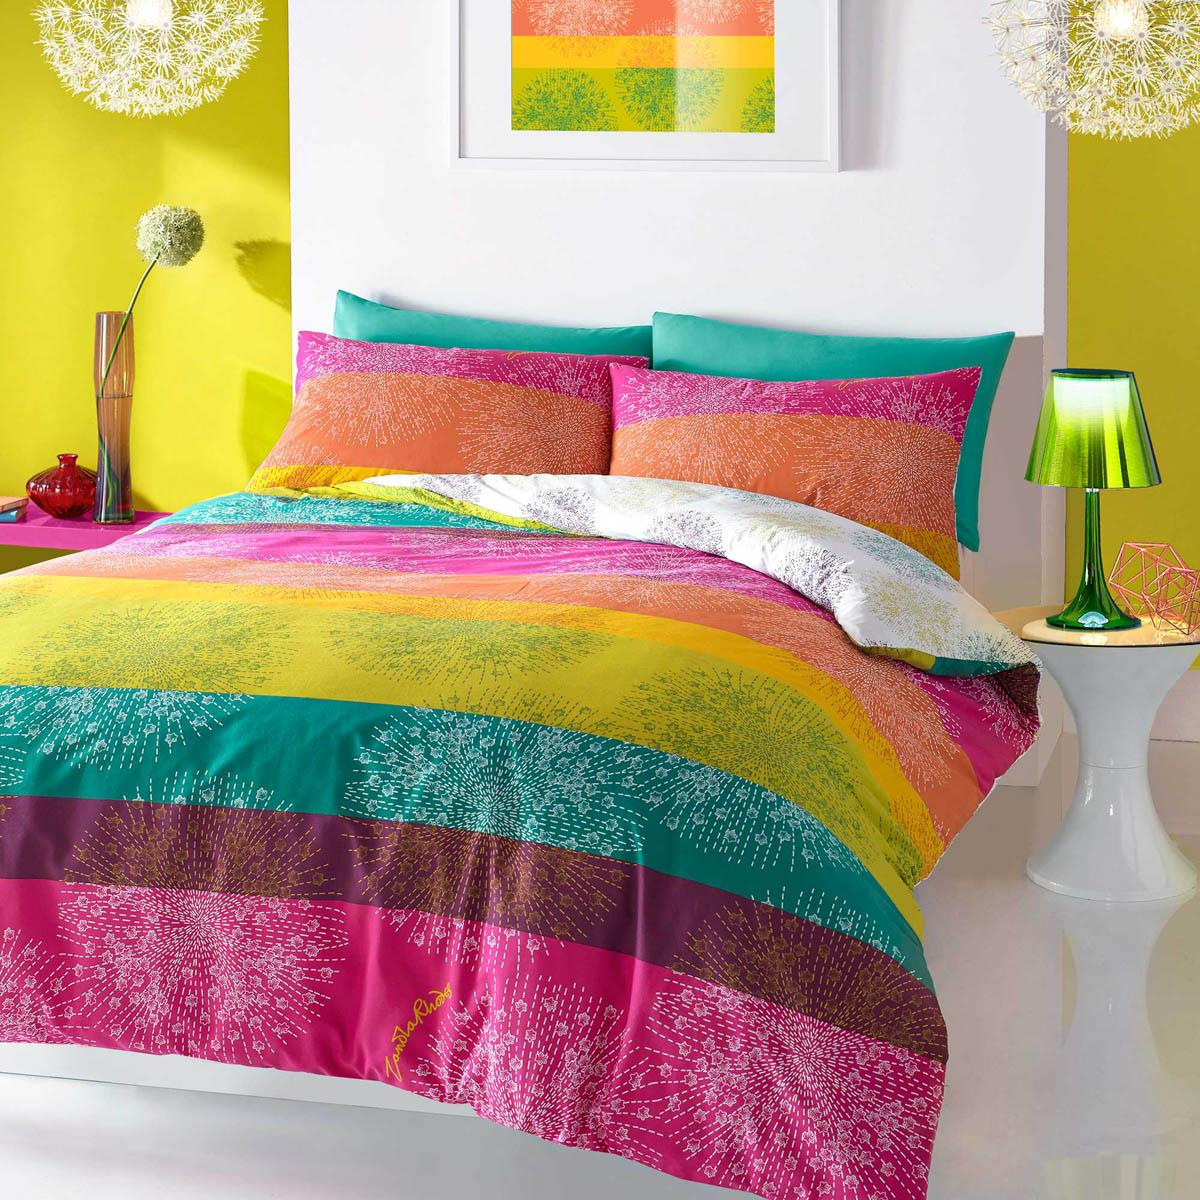 Use Colorful Bedding Sets